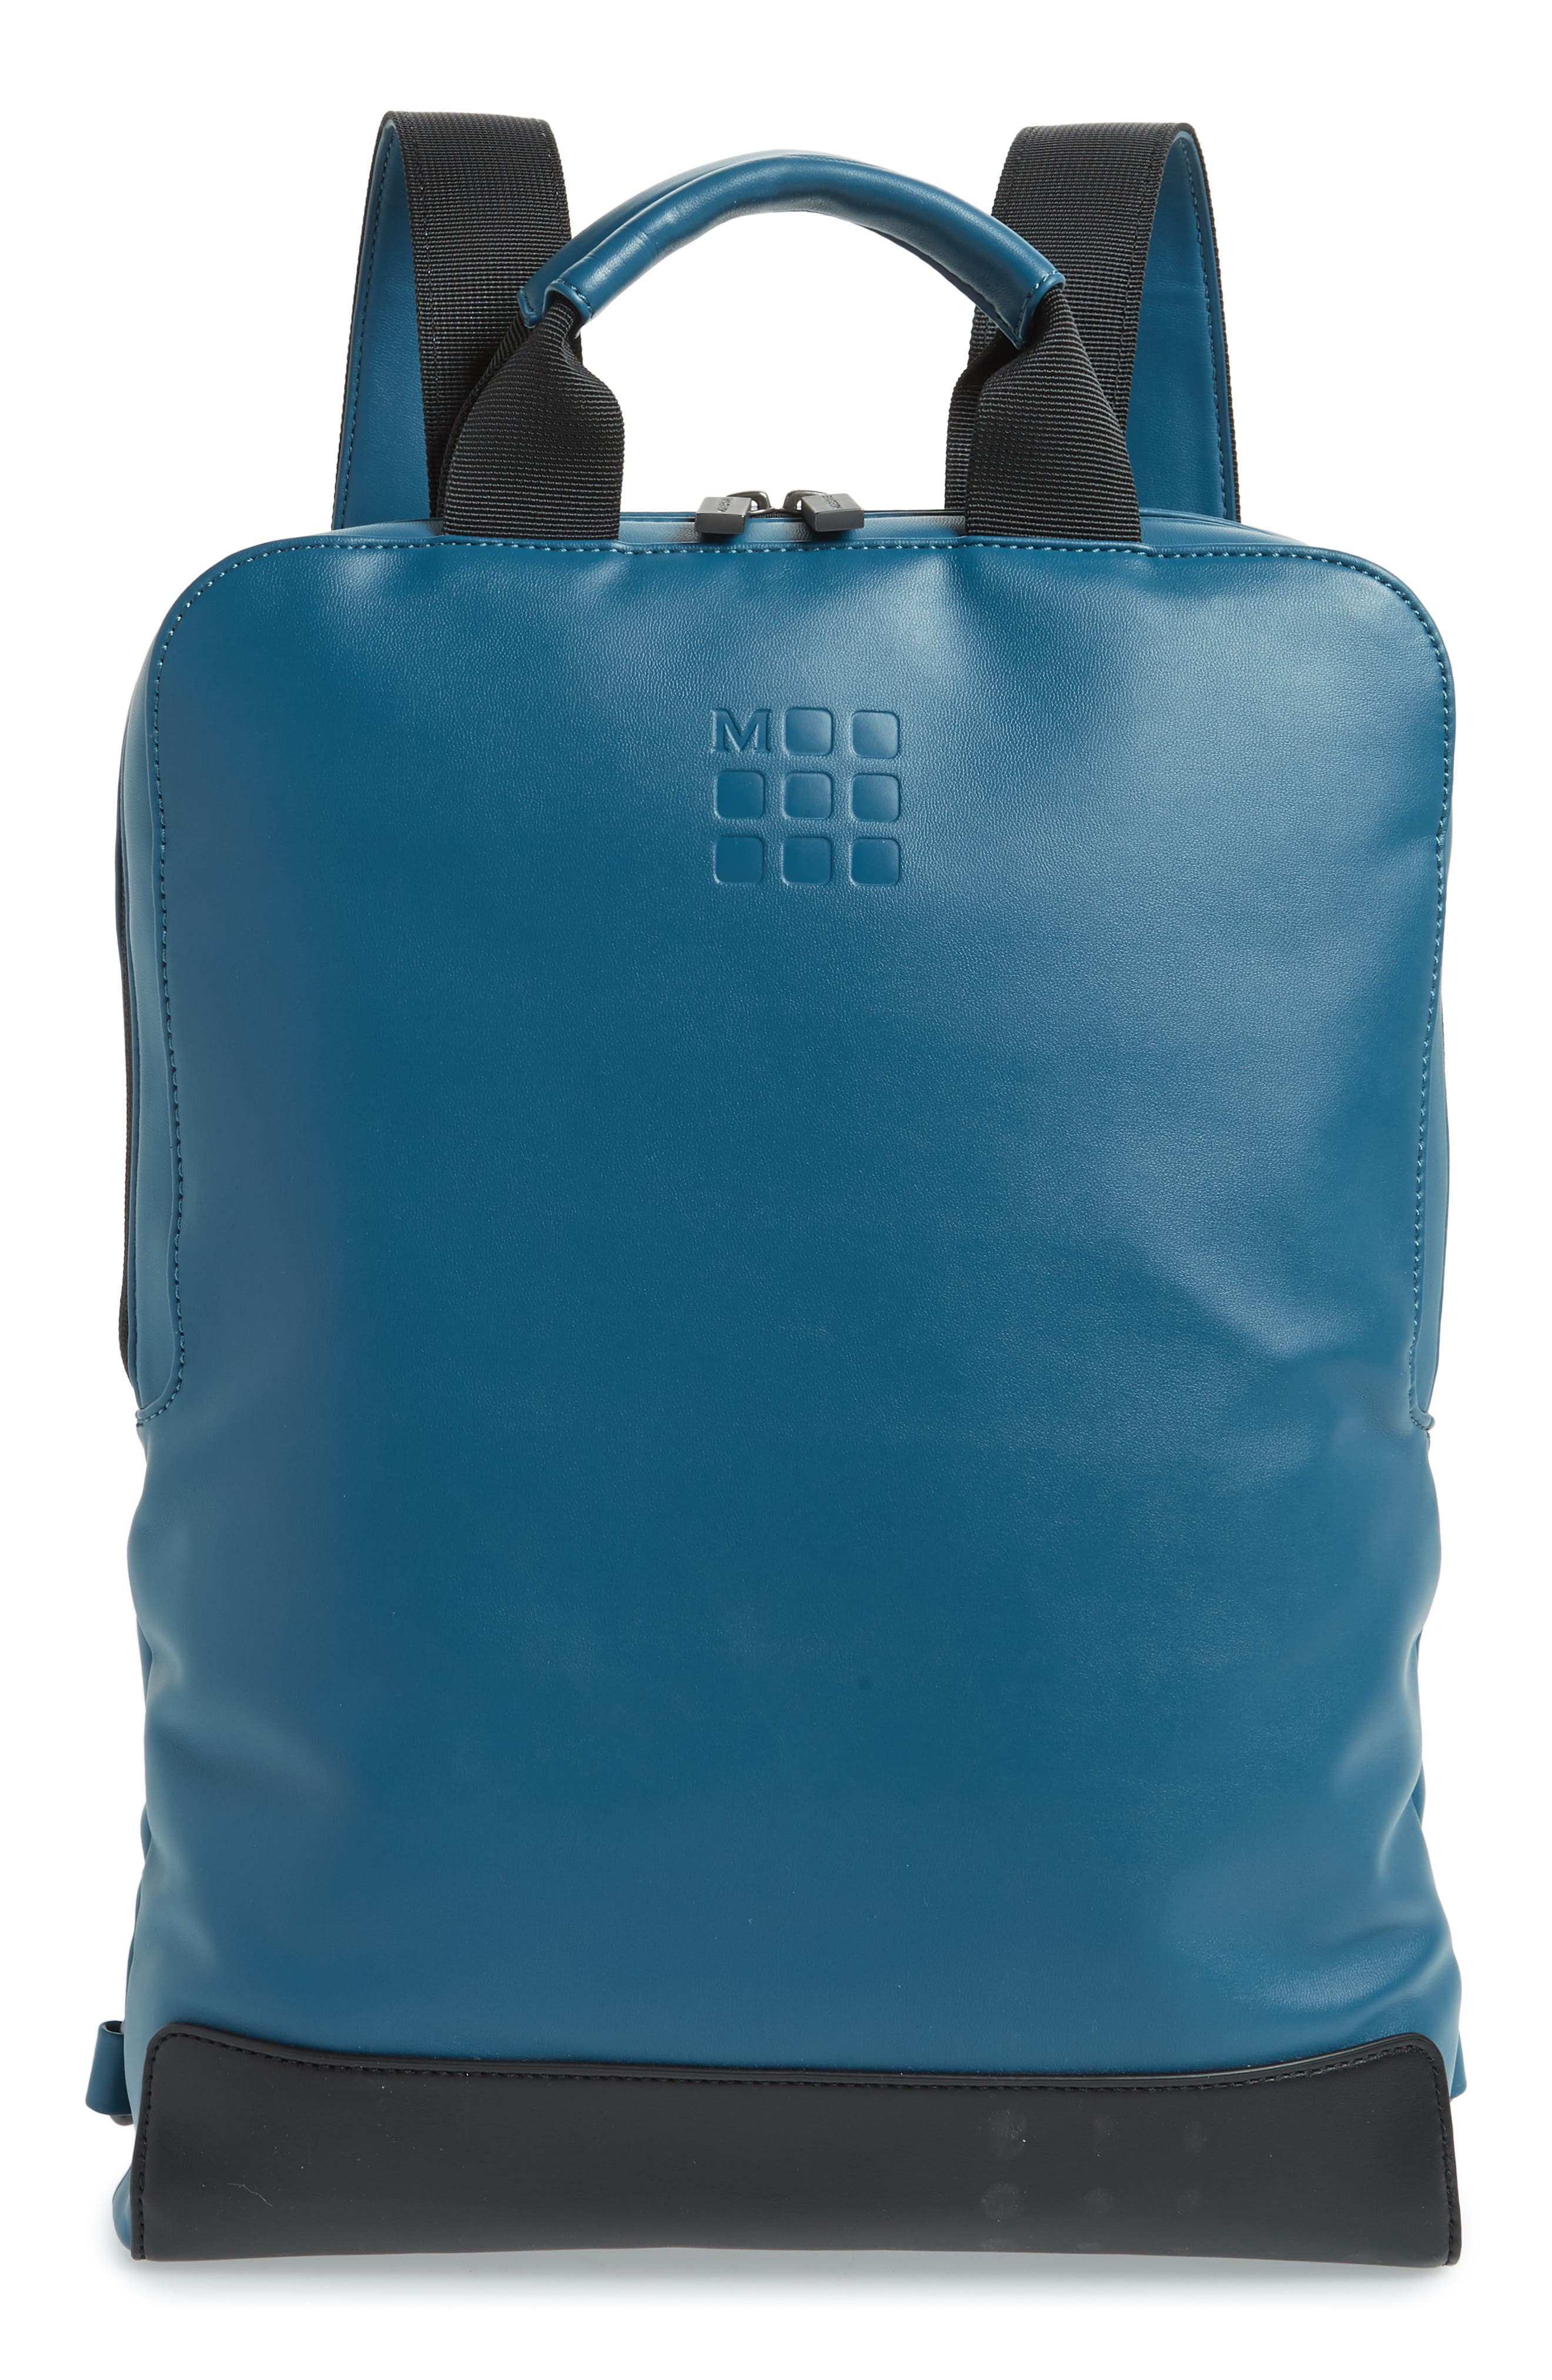 ID Vertical Device Bag,                         Main,                         color, 460